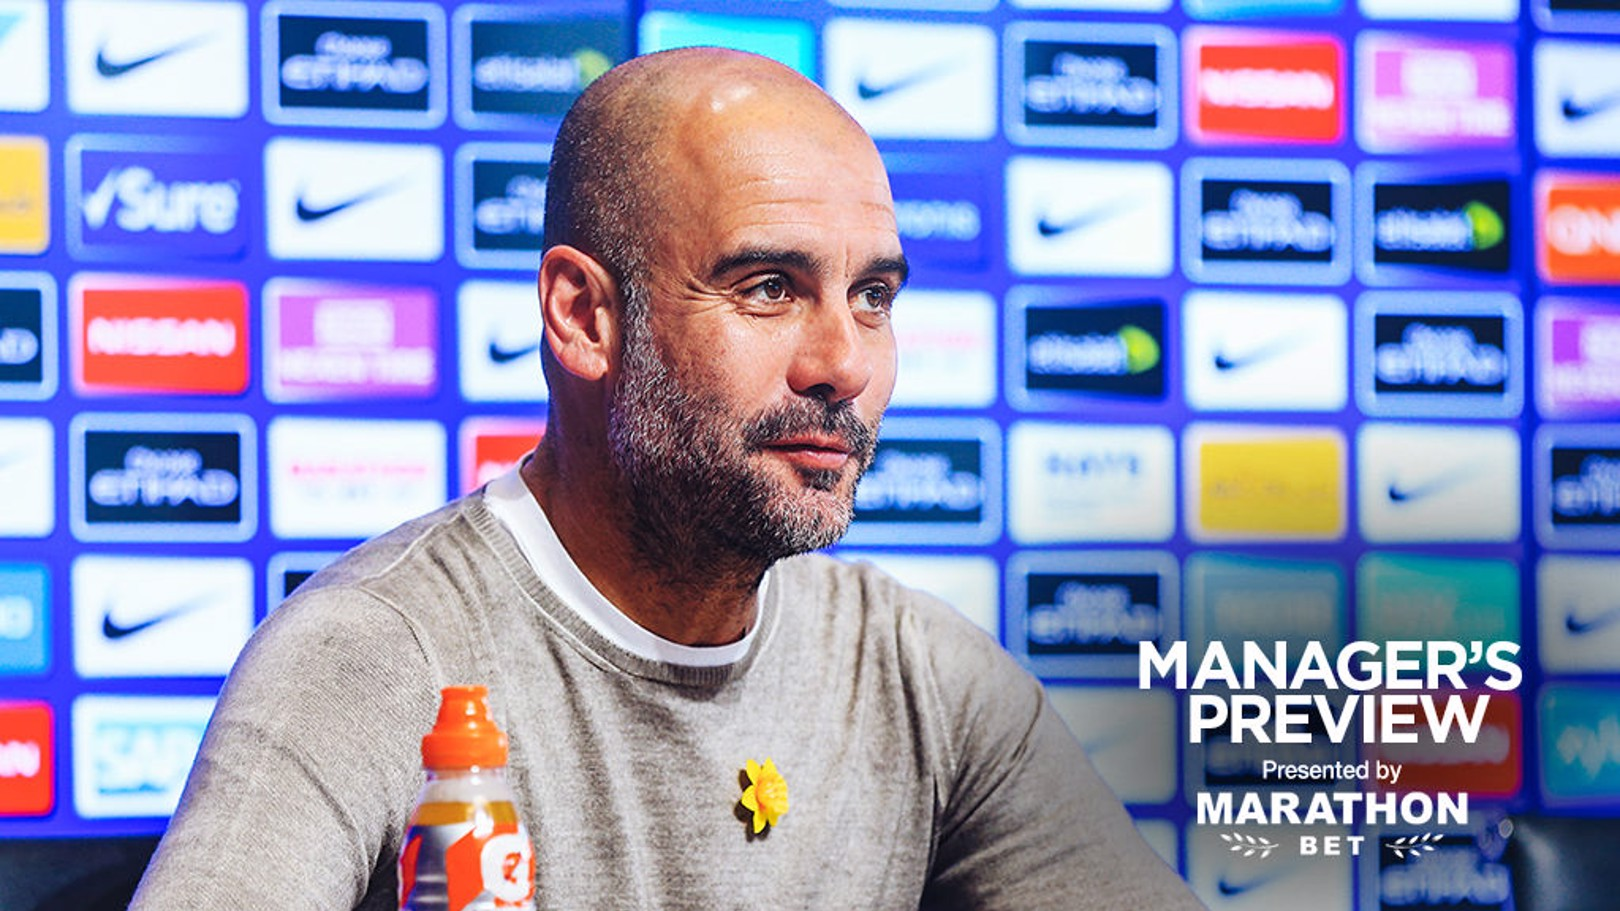 PEP TALK: The boss faced the press ahead of Saturday's game with Watford